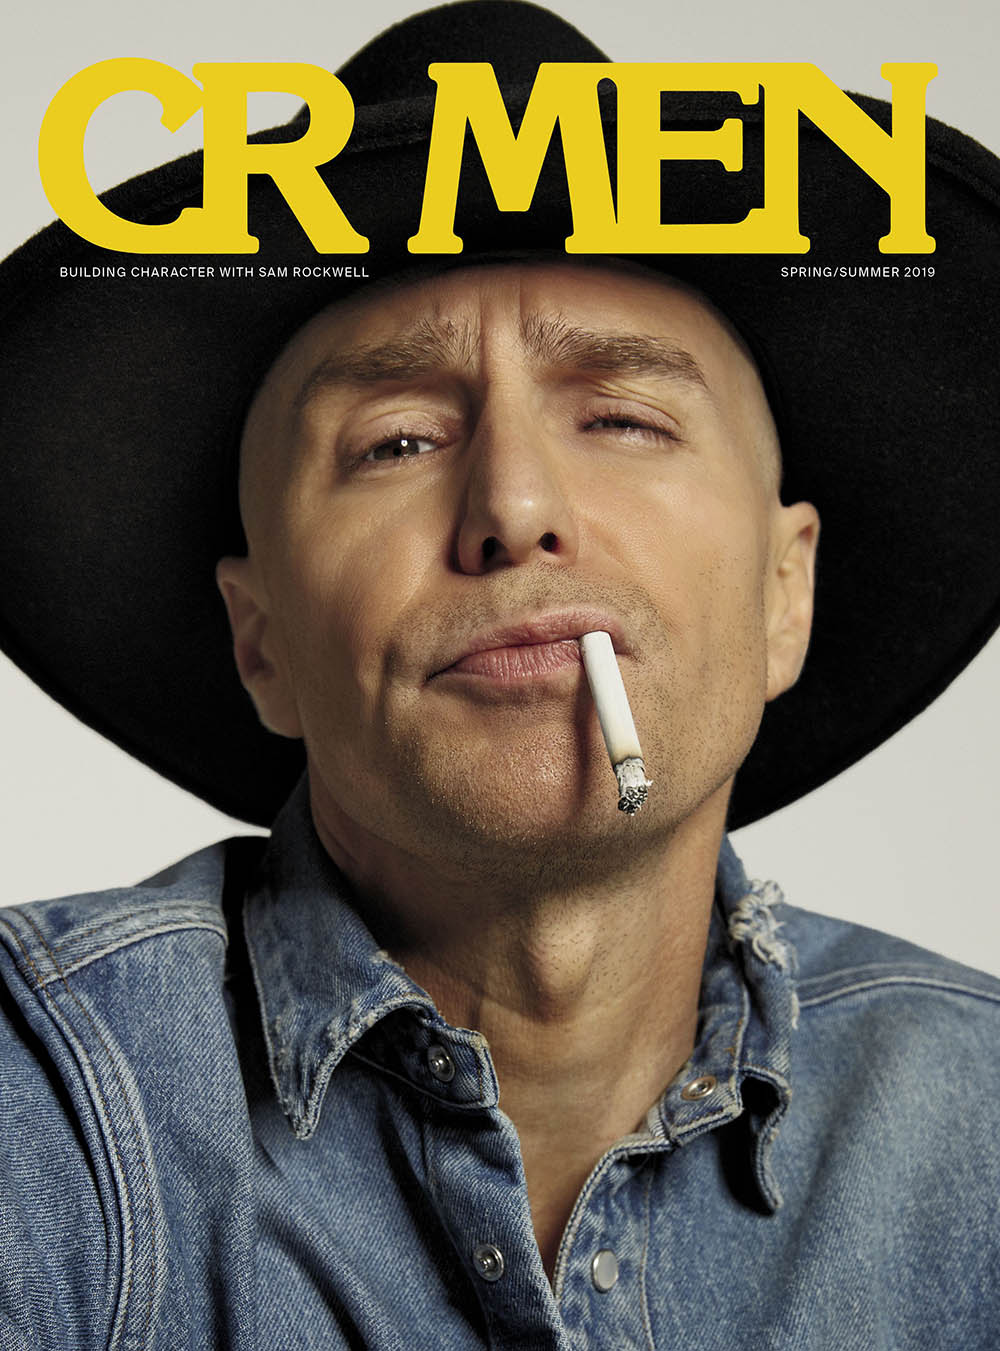 Sam Rockwell covers CR MEN Issue 8 by Roe Ethridge